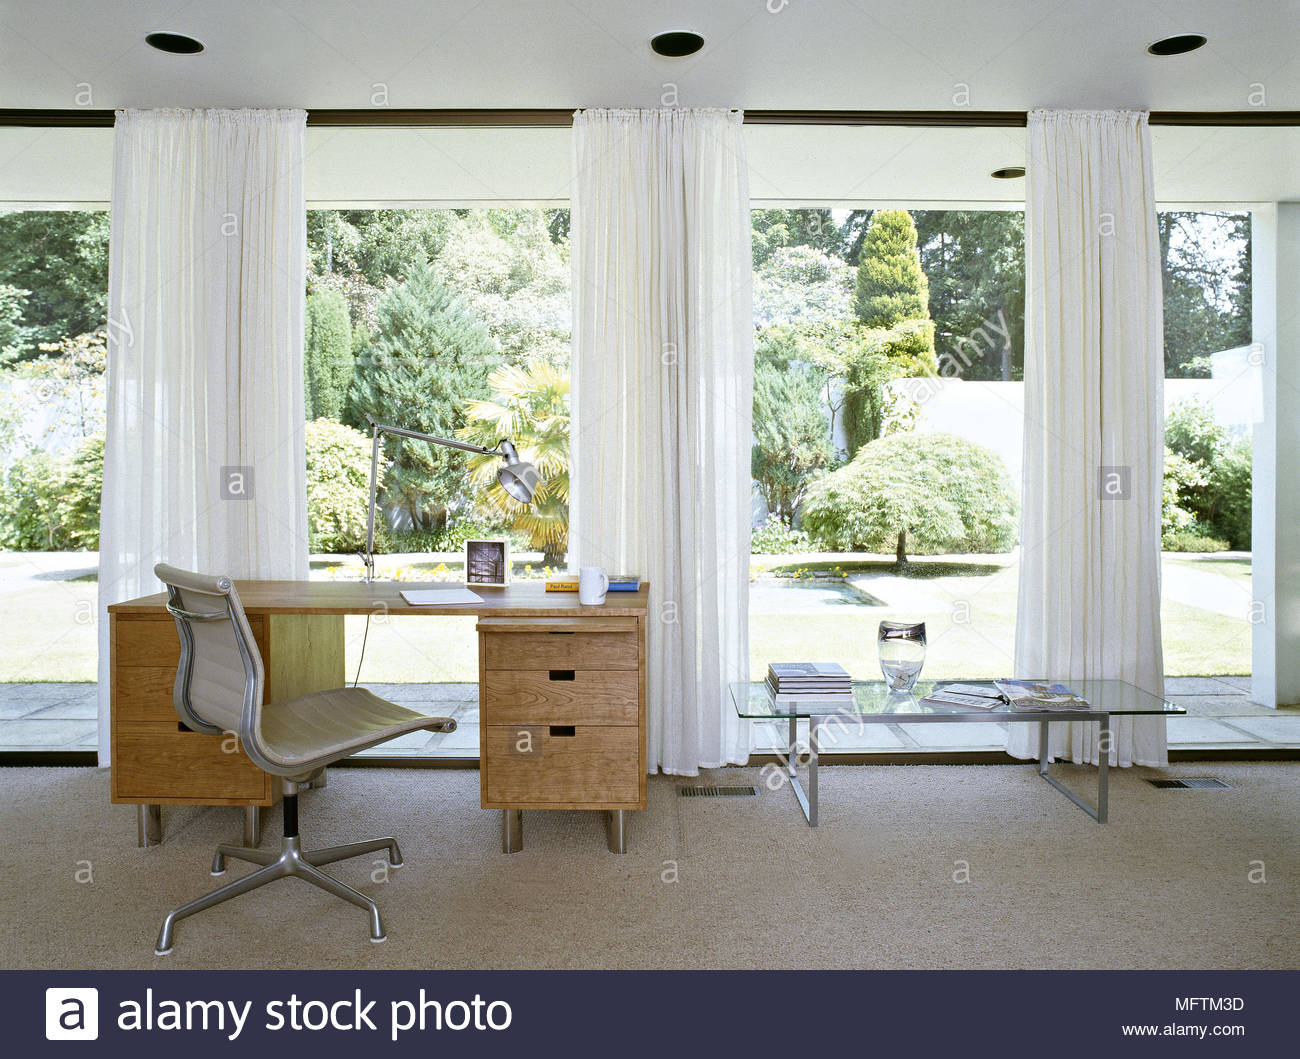 A Modern Home Office With Wooden Desk Swivel Chair Windows With White  Curtains Glass Coffee Table